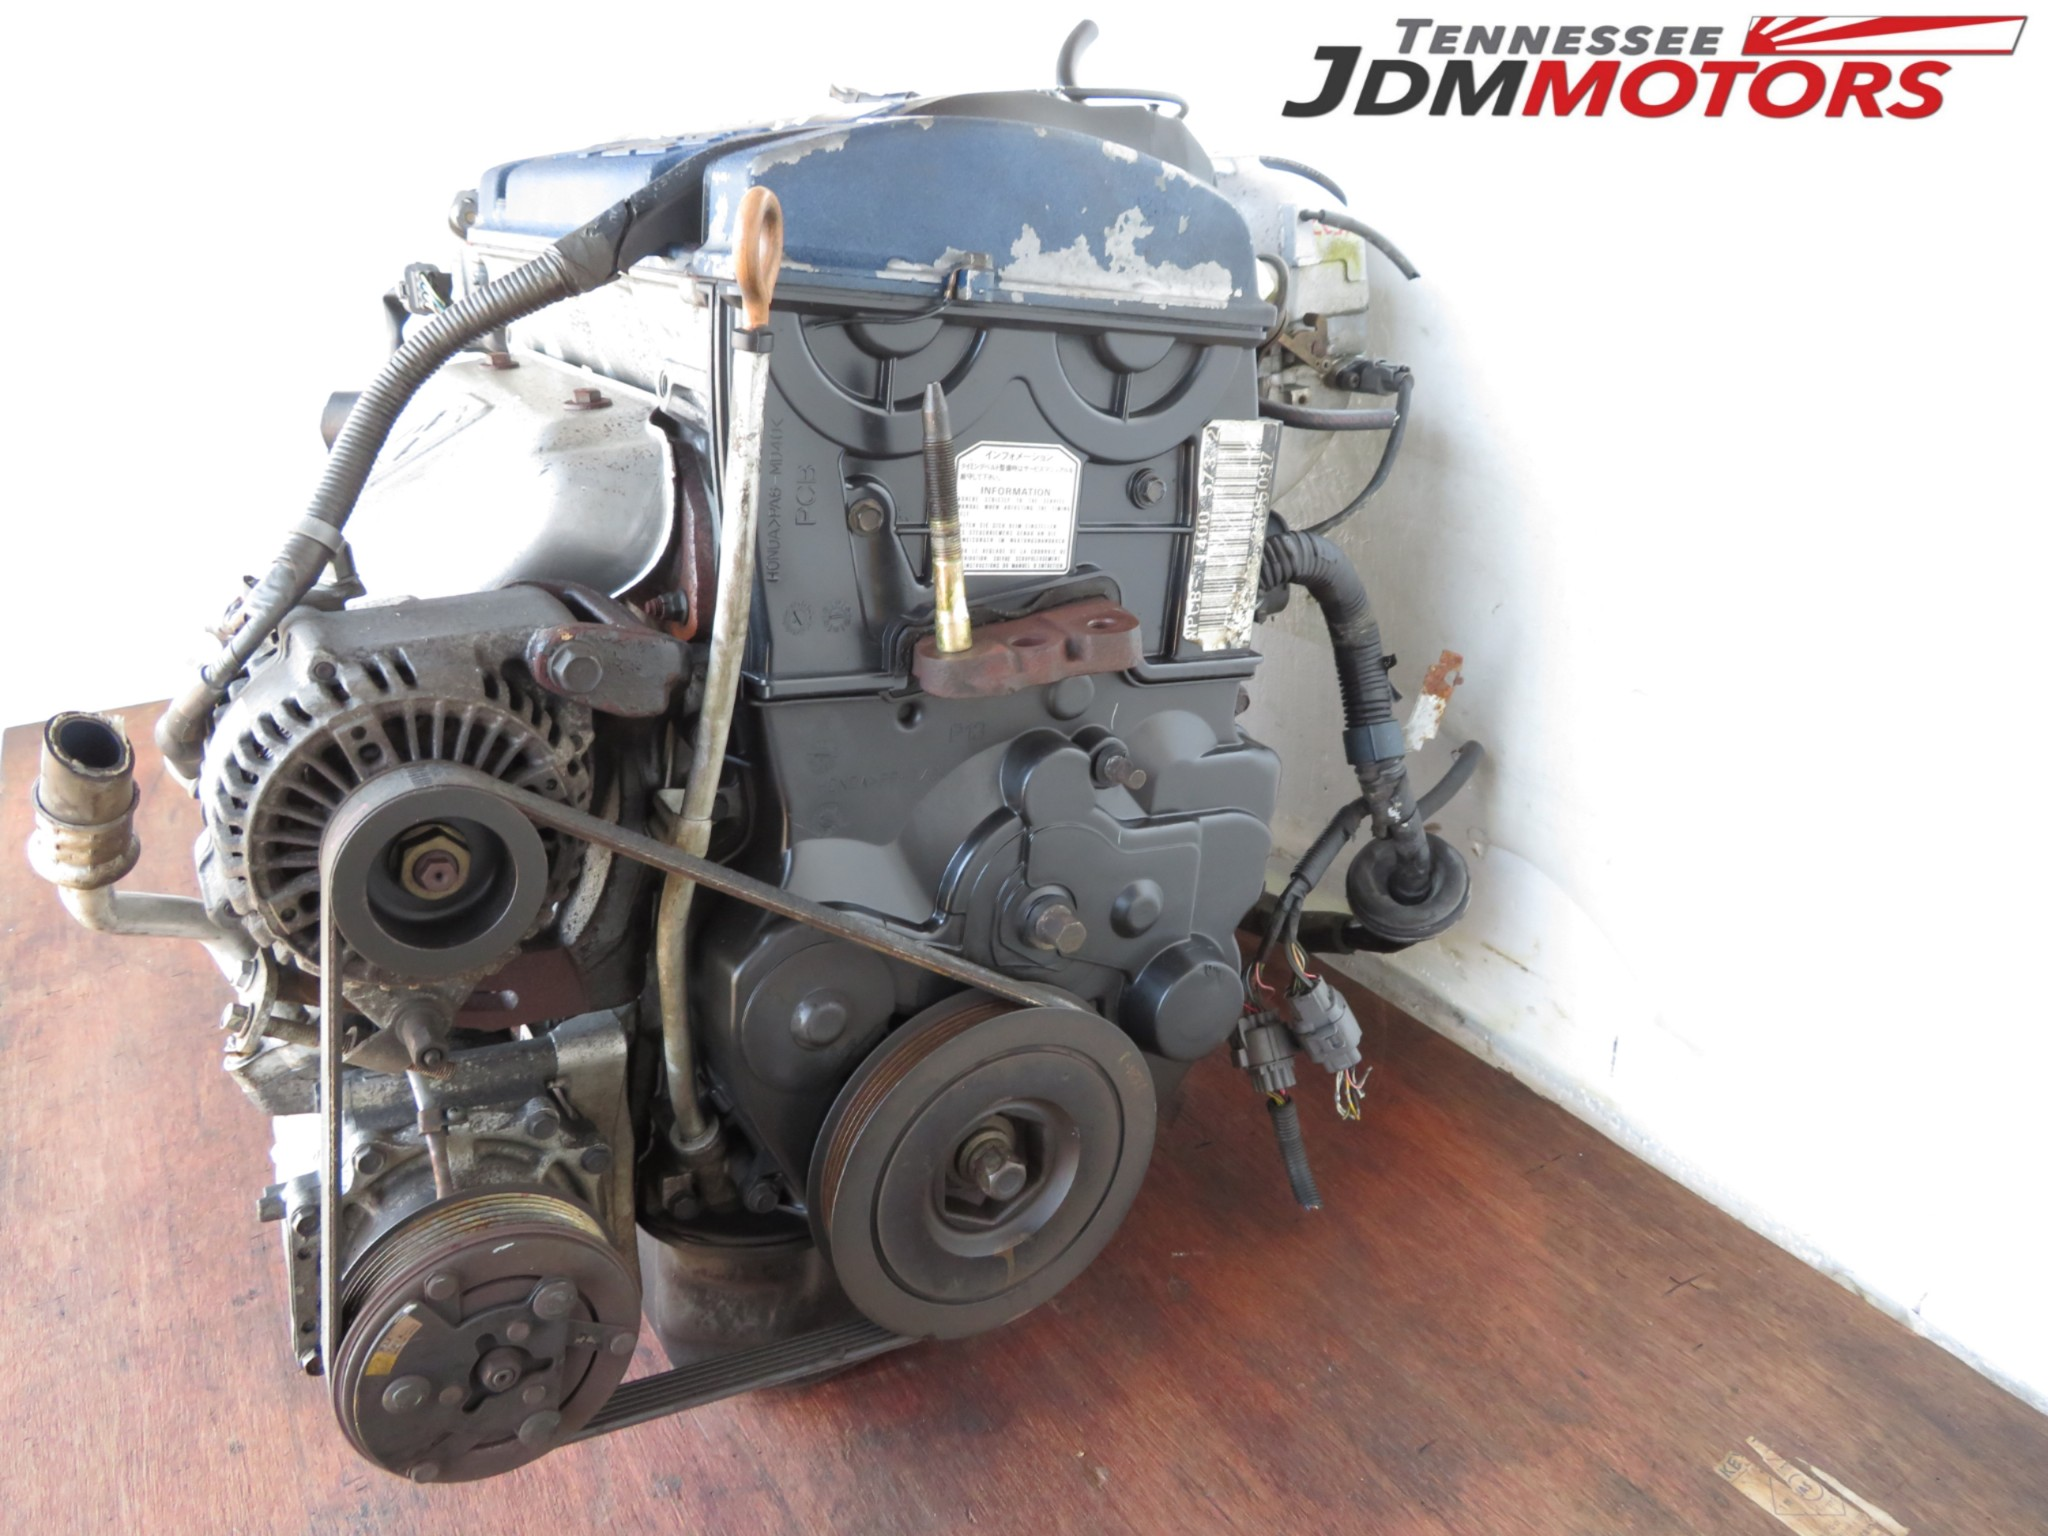 Details about 98-02 HONDA ACCORD SIRT 2 0L VTEC ENGINE WITH AUTO  TRANSMISSION JDM HONDA F20B